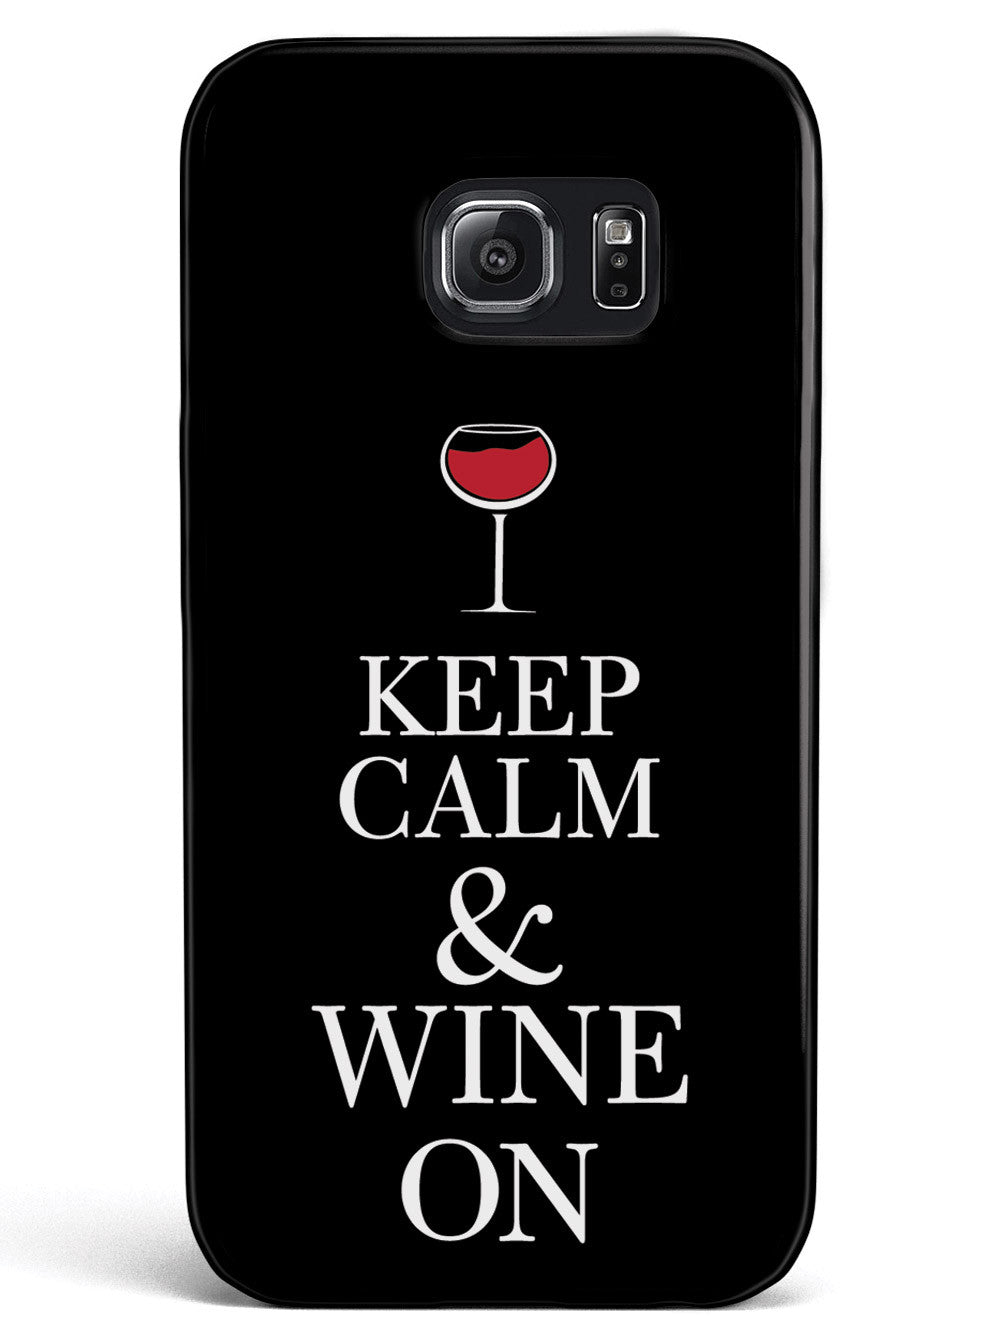 Keep Calm & Wine On Case